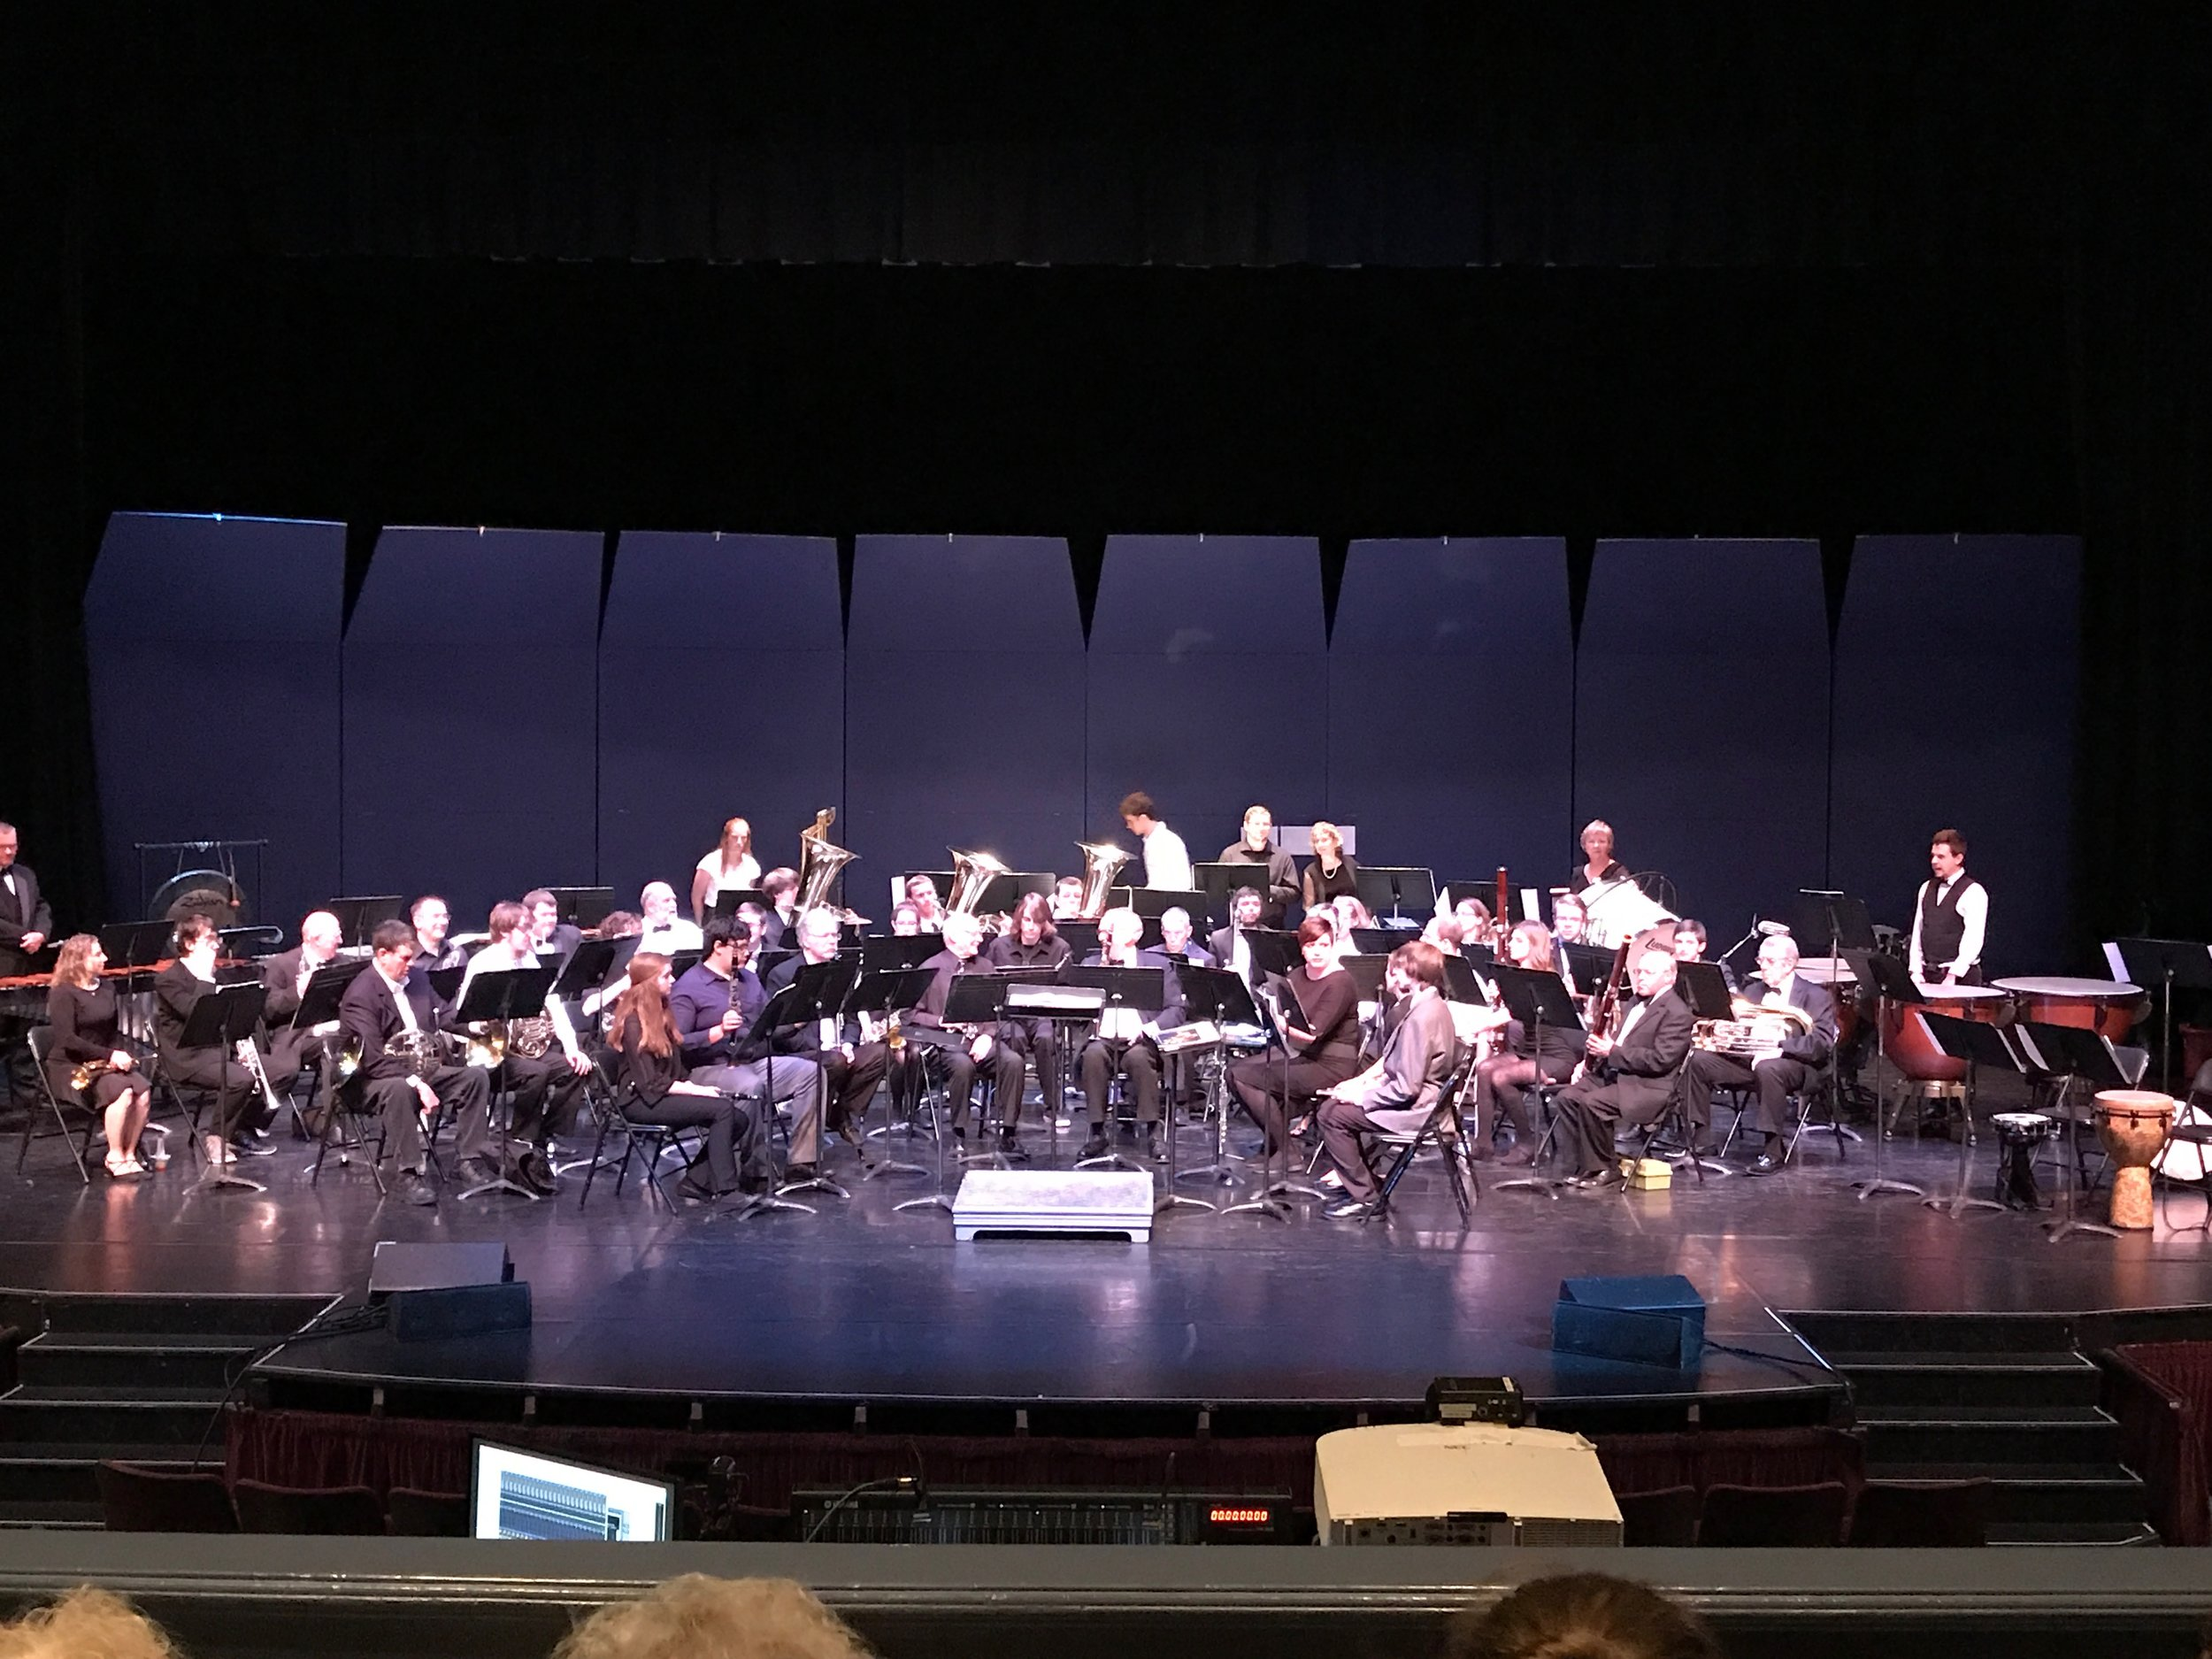 The Klamath Falls Community Band at the Ross Ragland Theater